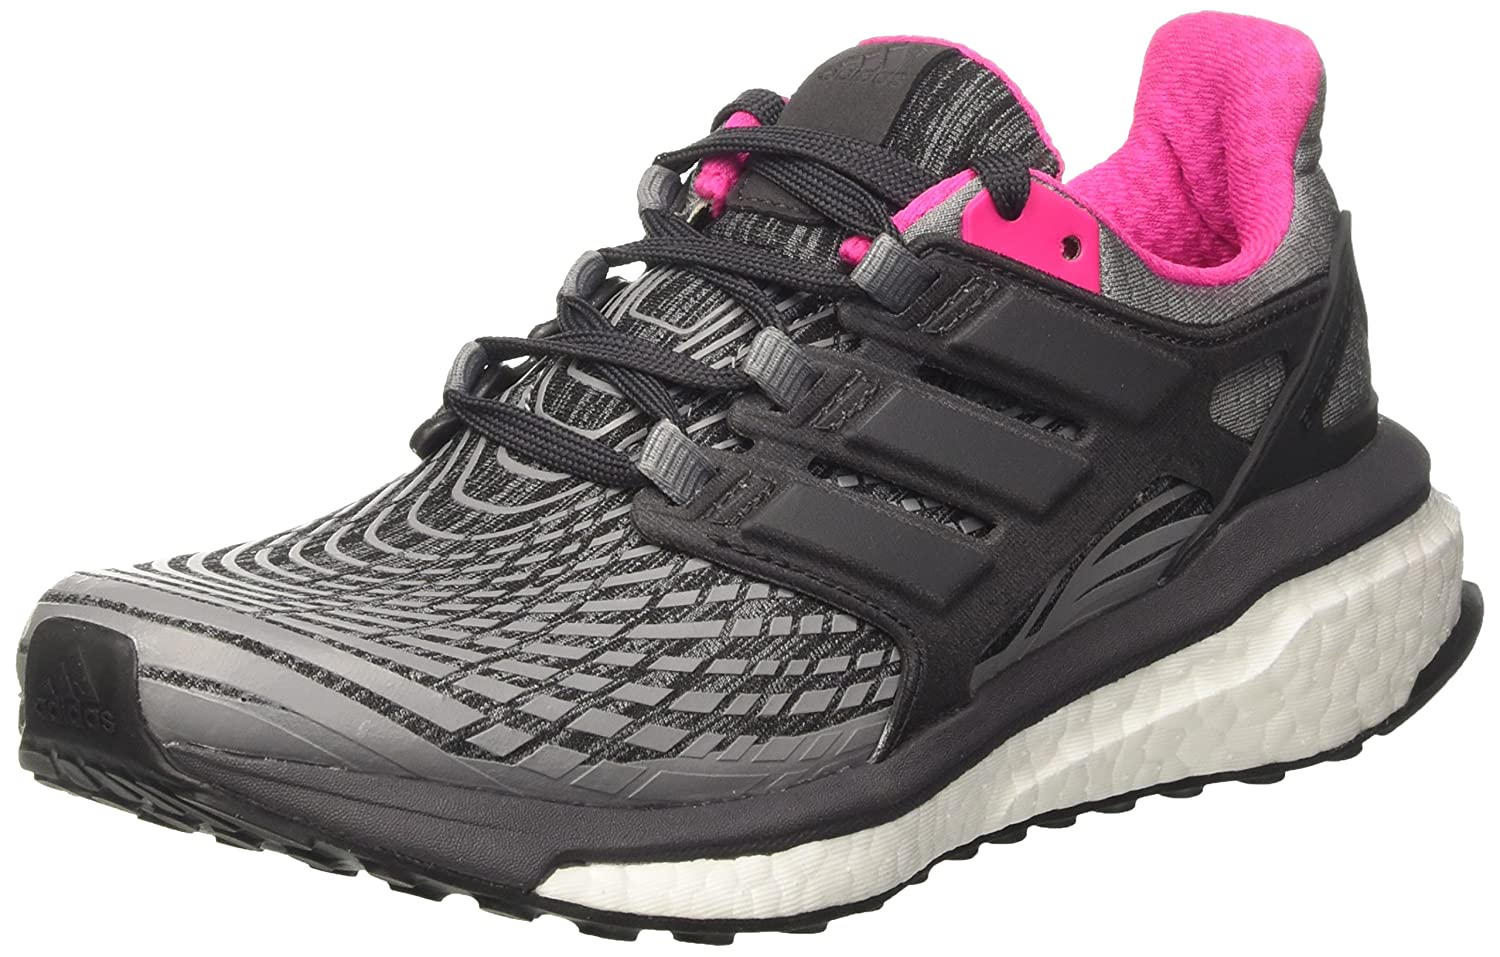 reputable site 27b7b 00329 Amazon.com Adidas Energy Boost W Shoes